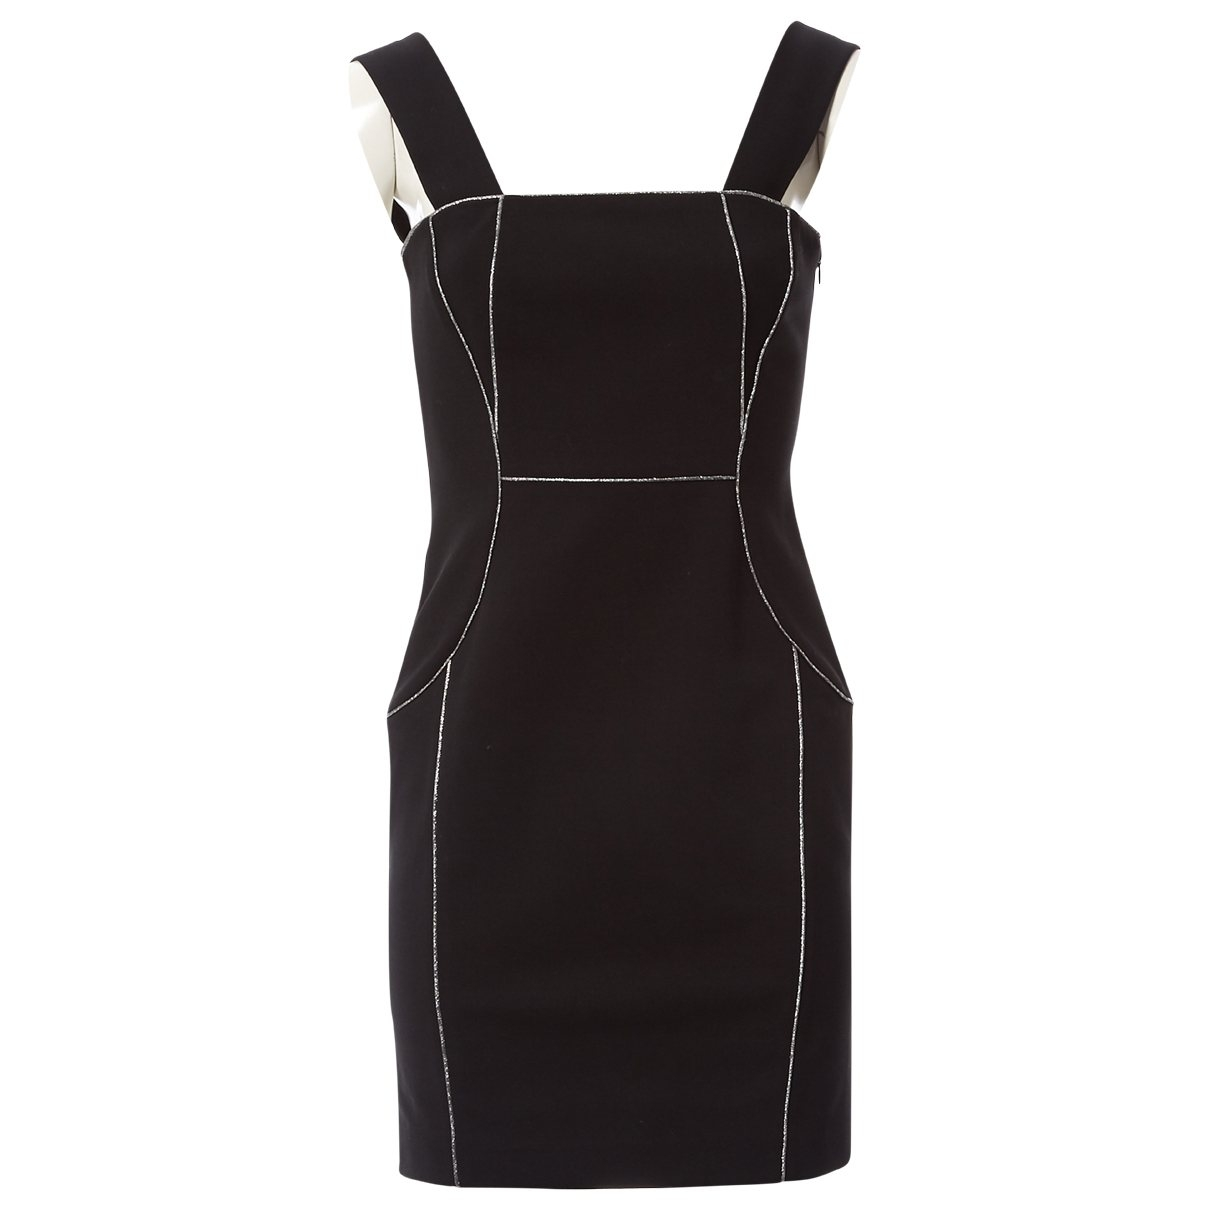 Ports 1961 \N Black Cotton - elasthane dress for Women 4 US